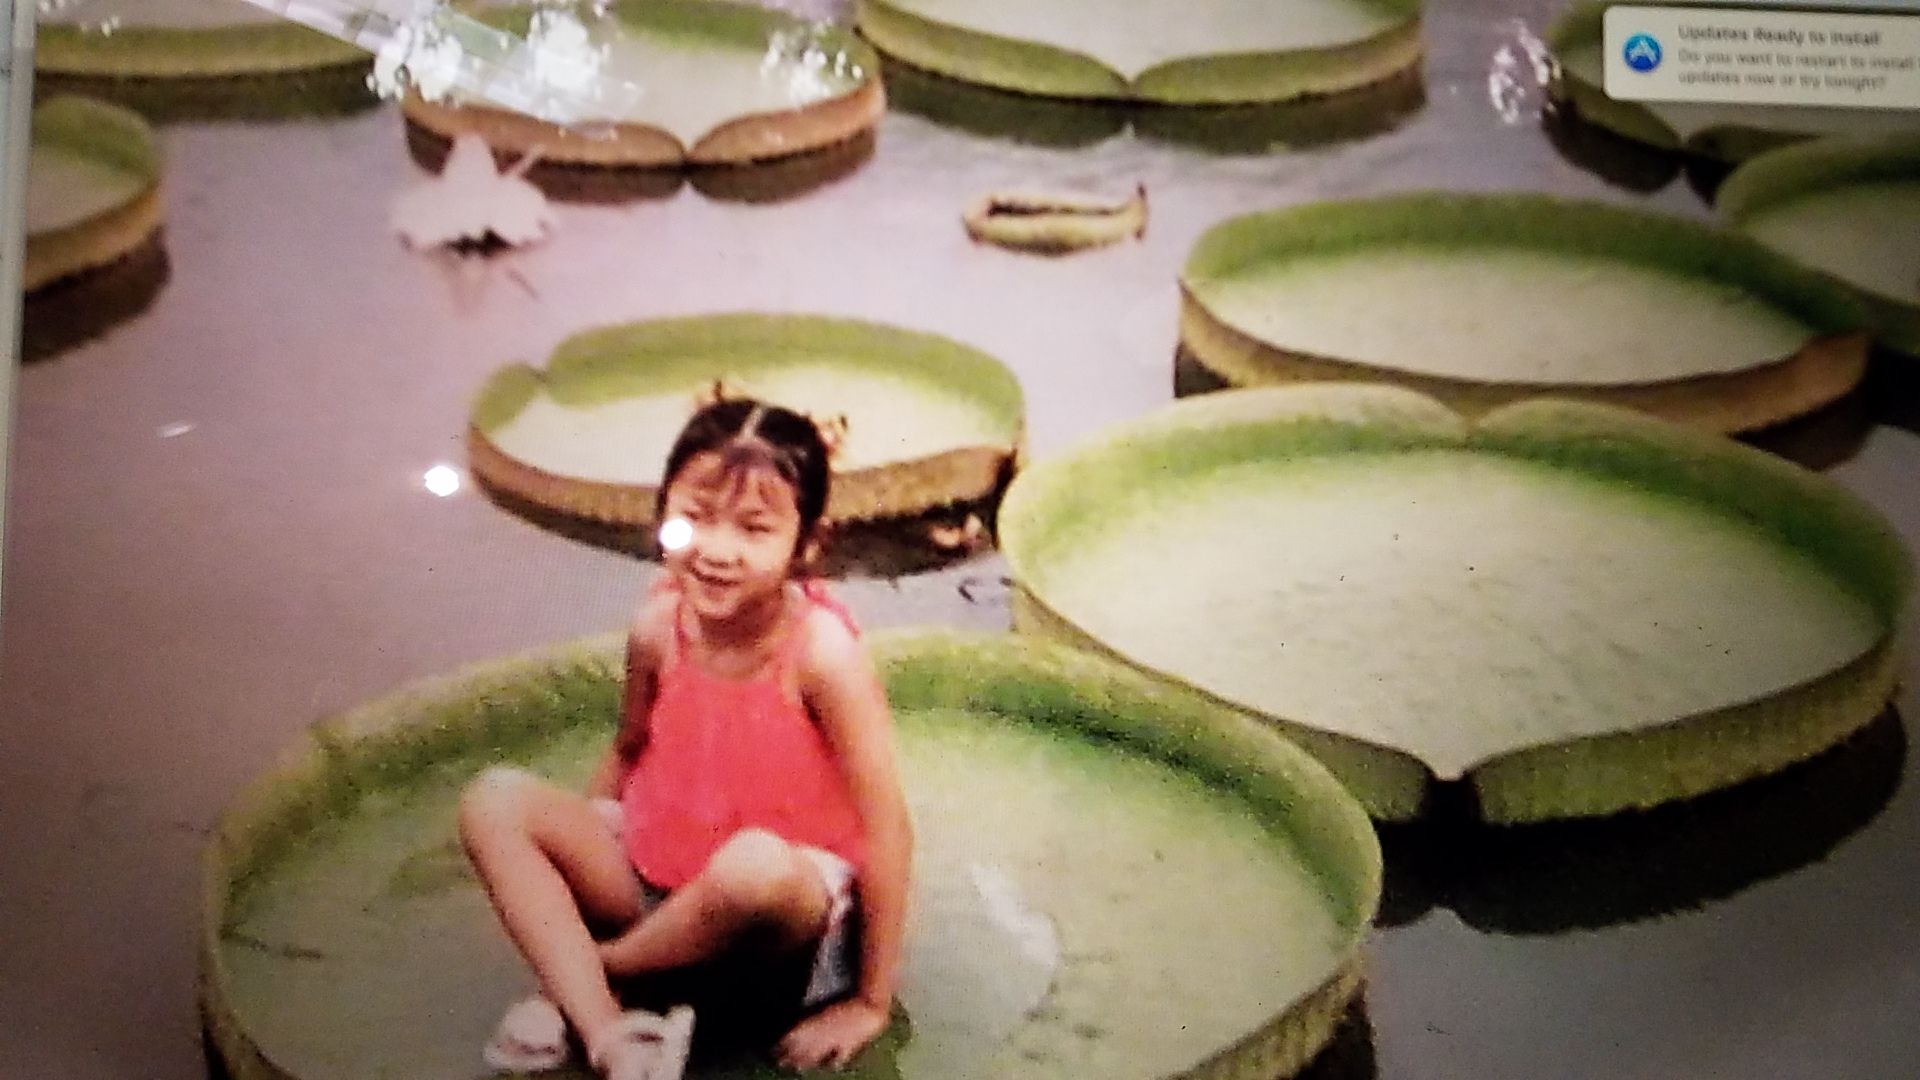 This was a photo hung in a pavilion of Dagguan park, showing how massive the lilies could grow.